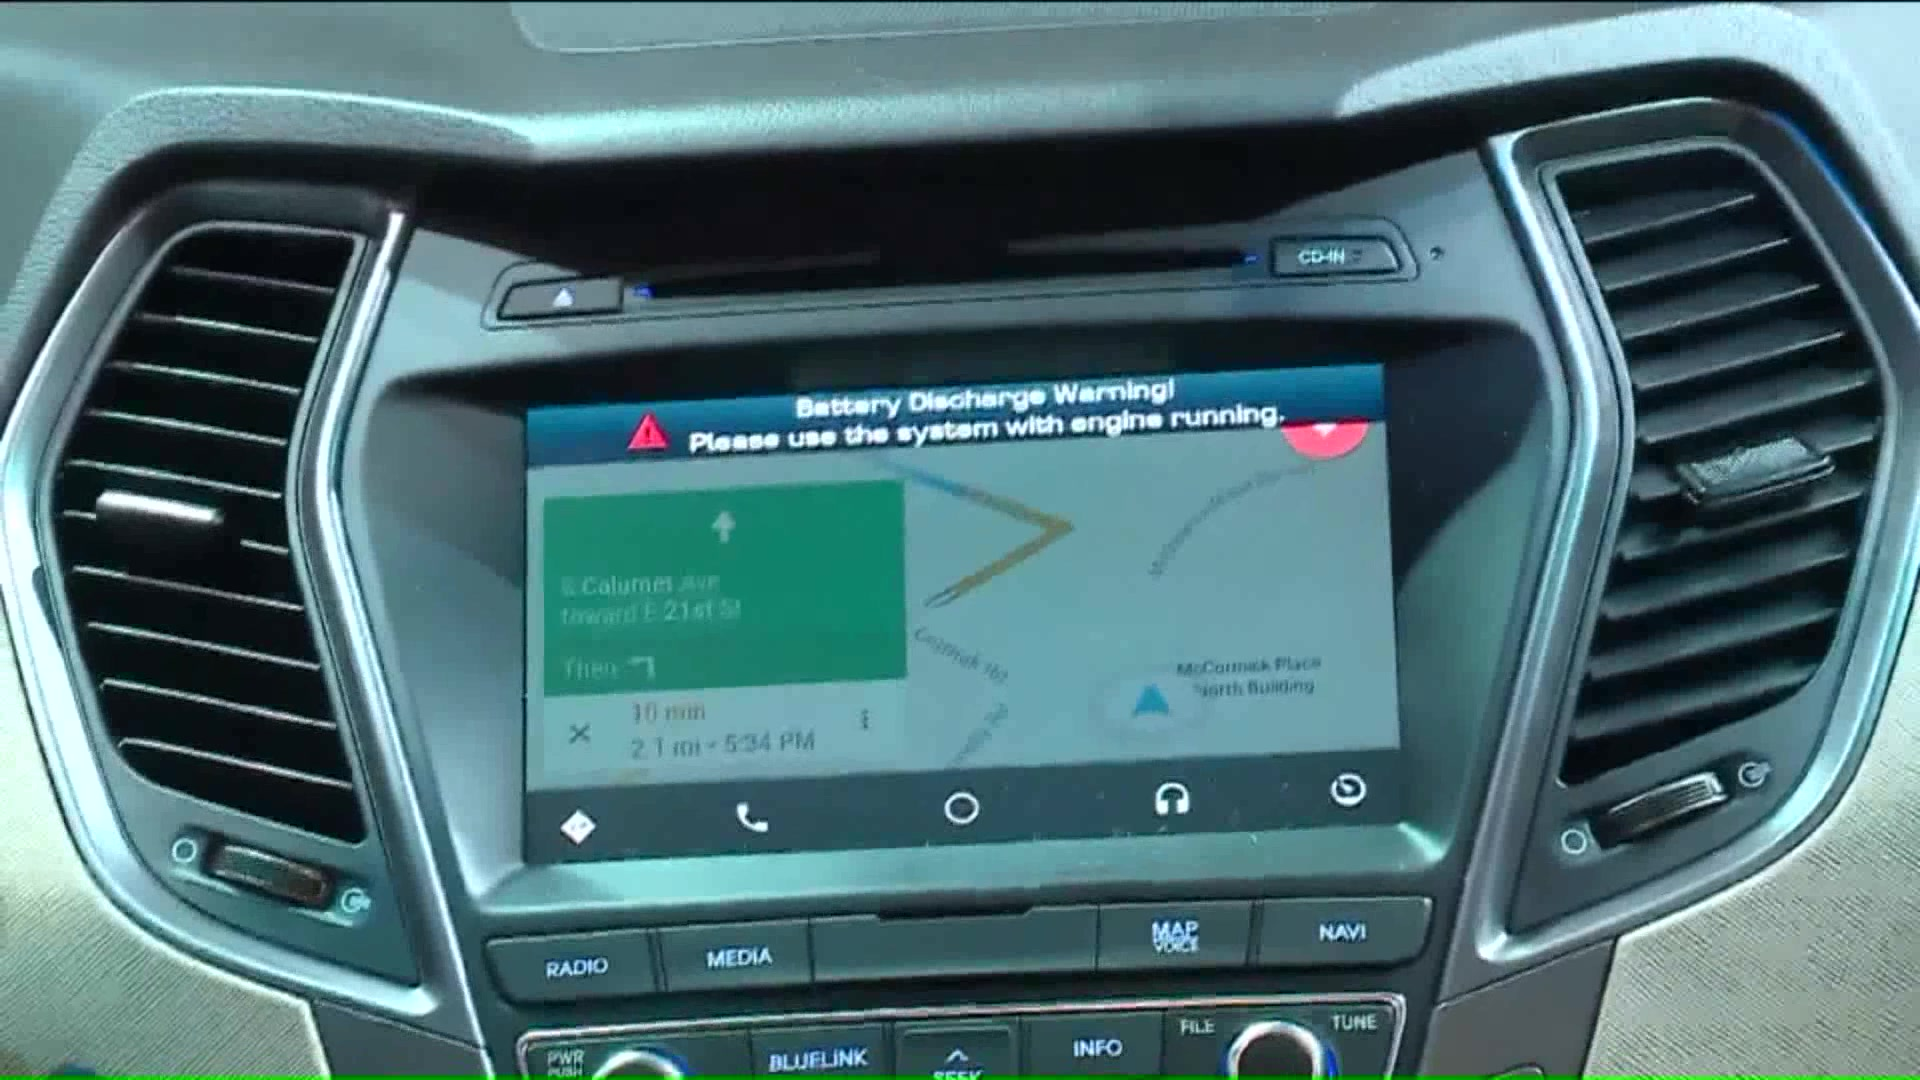 Safe Driving Technology On Display At Chicago Auto Show